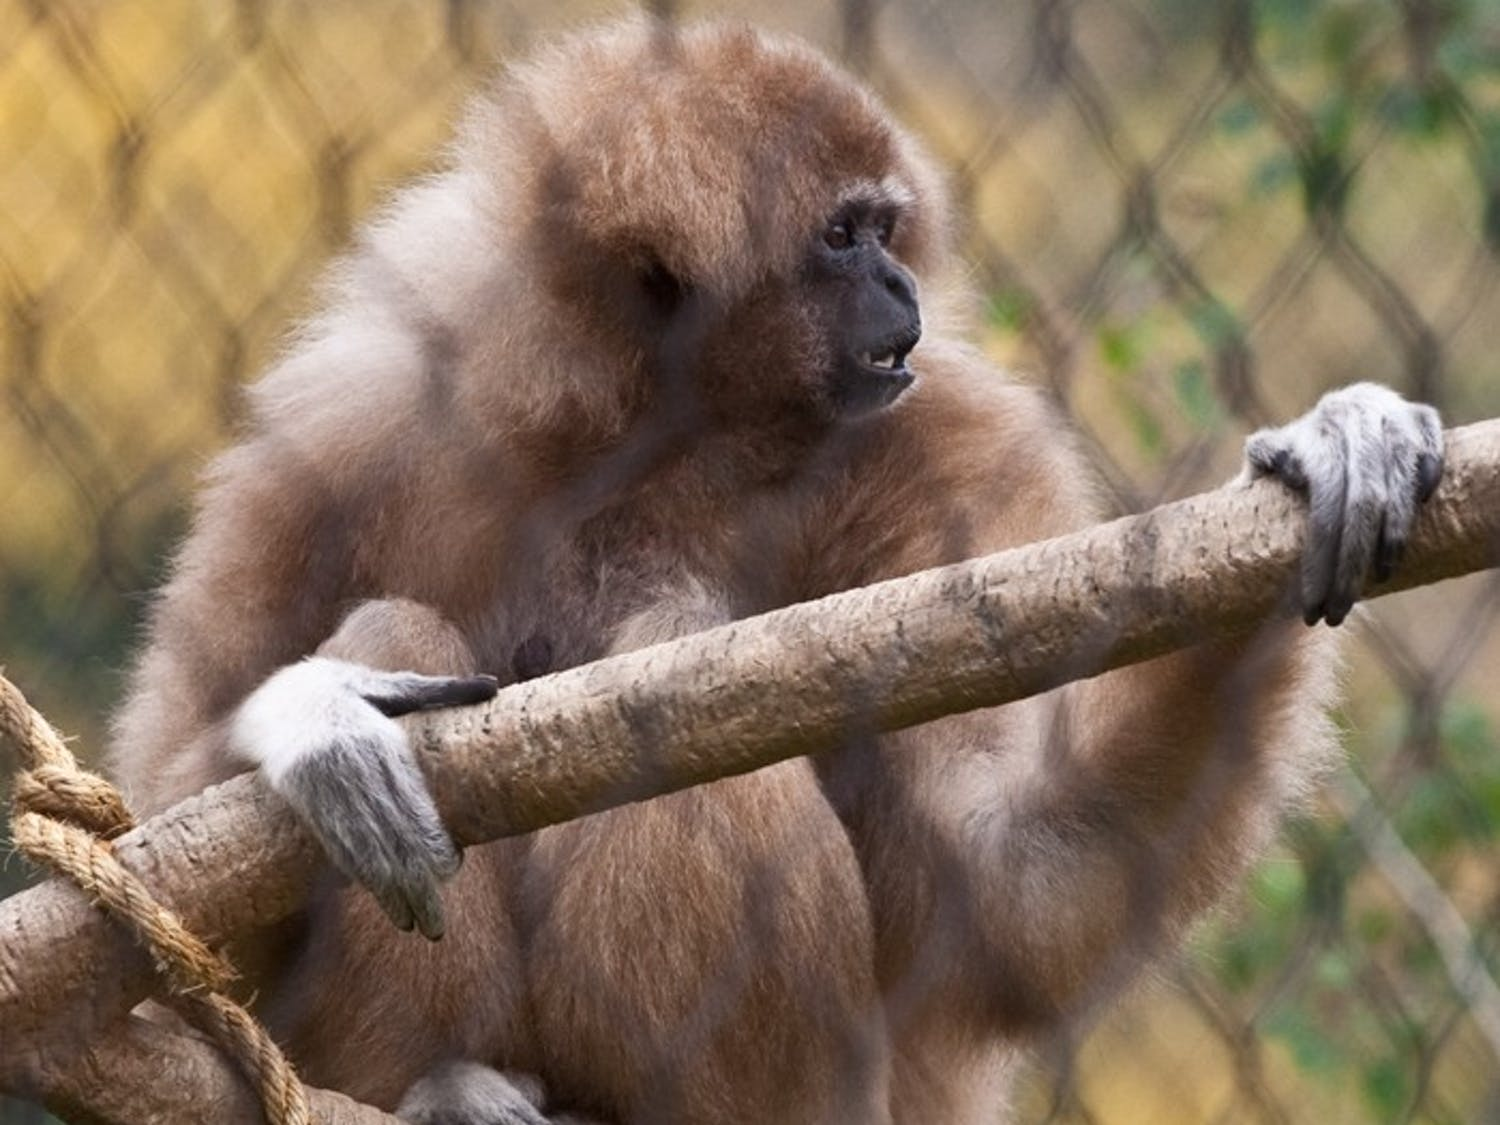 Primate researcher's rights violated, says faculty report